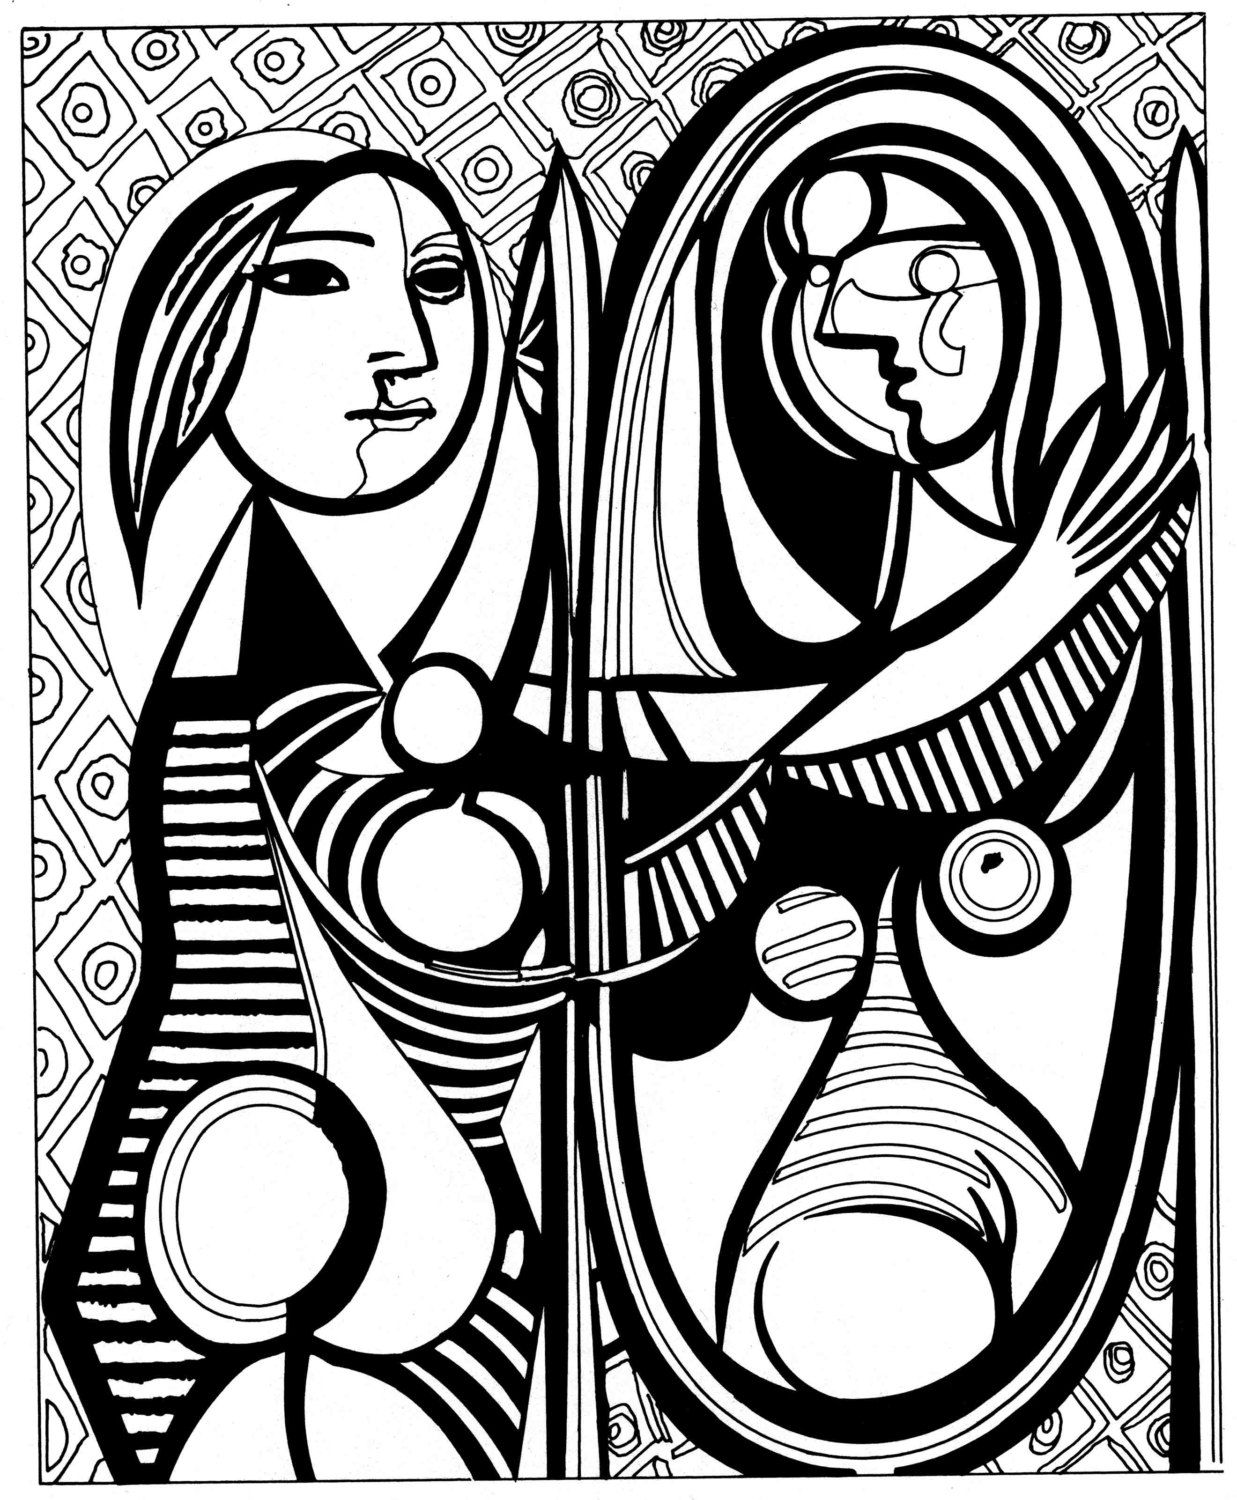 Pablo Picasso painting \